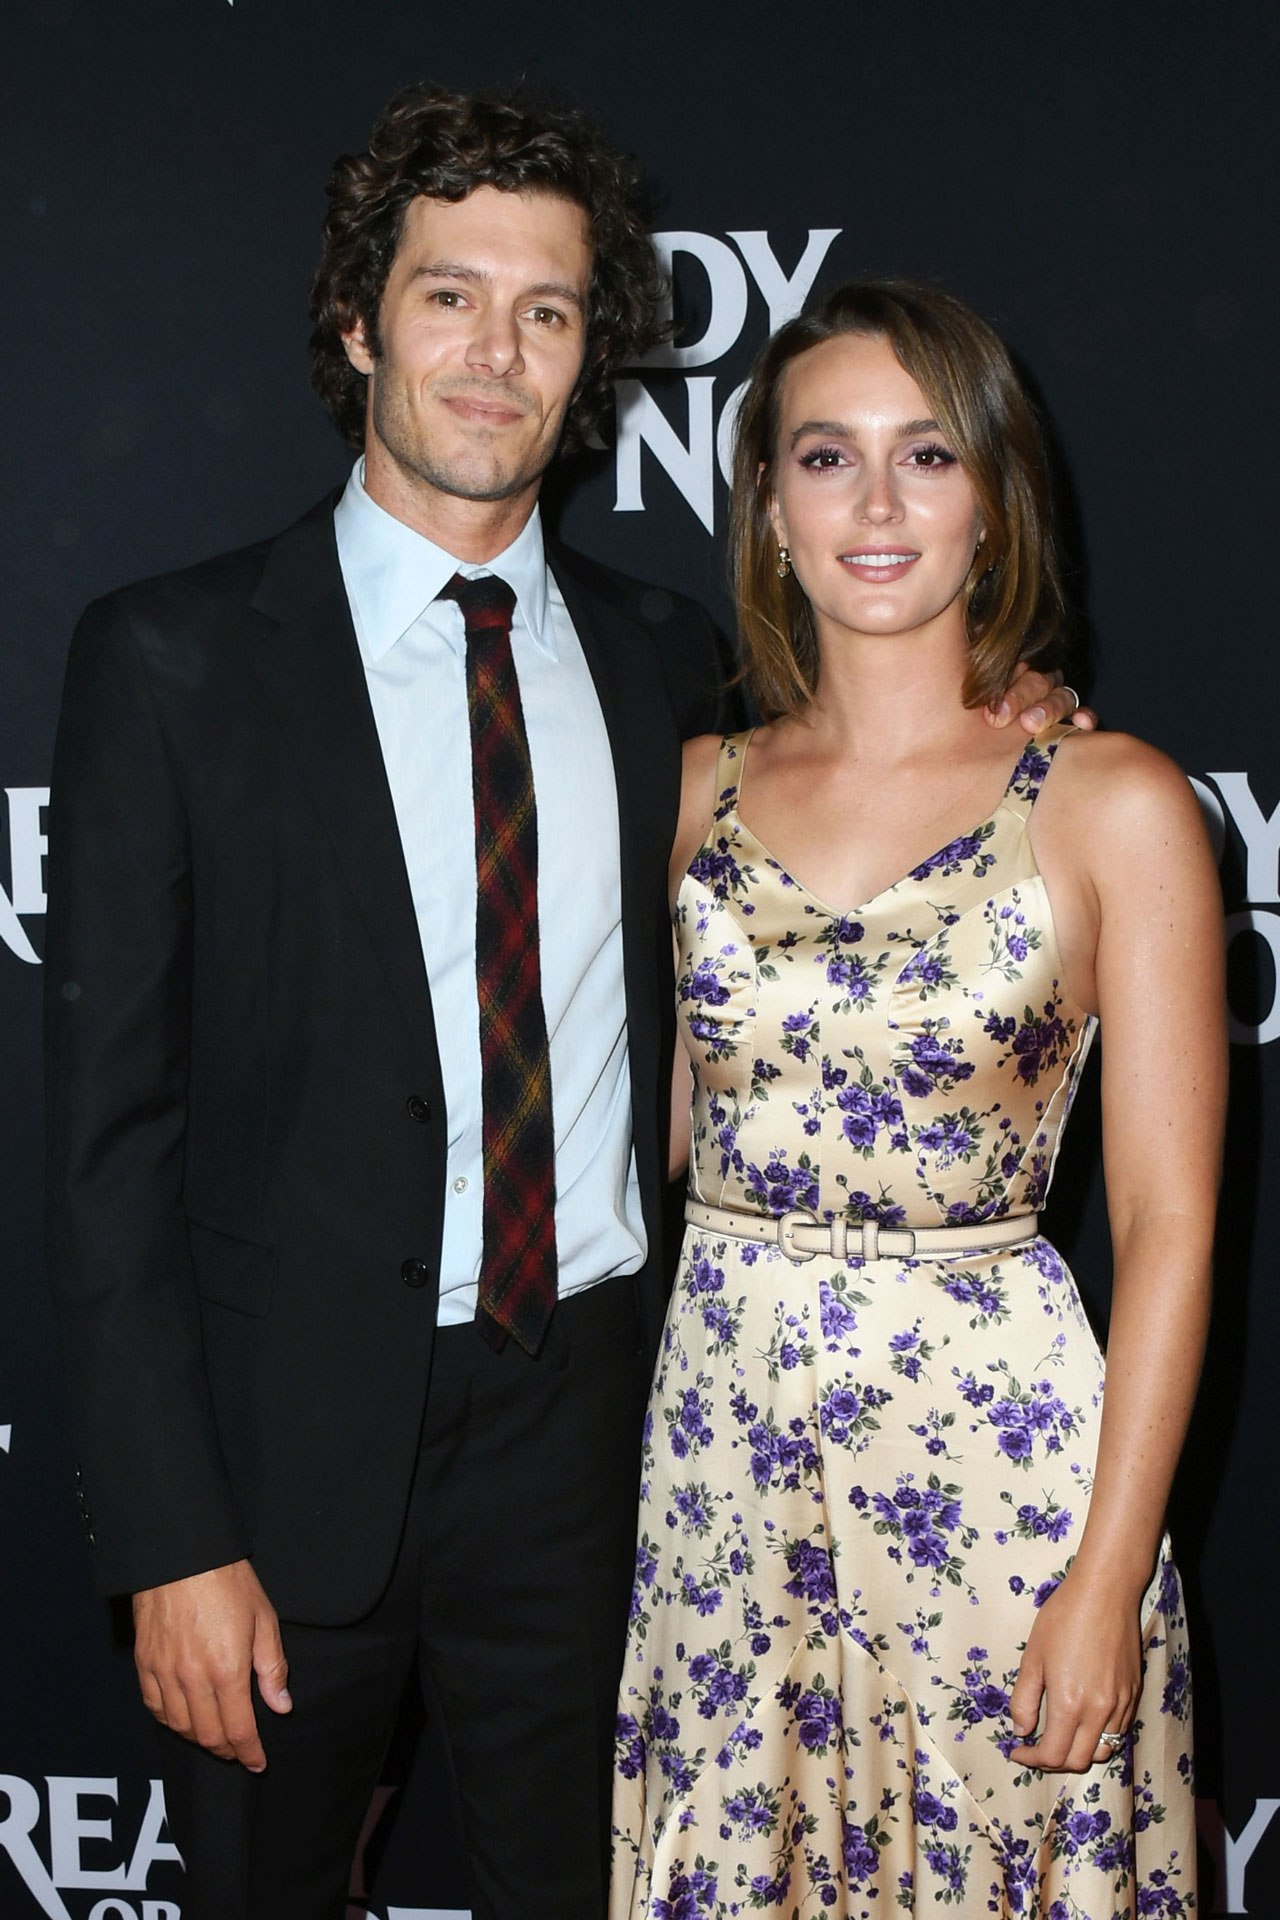 Adam Brody reveals how he felt about marrying Blair Waldorf